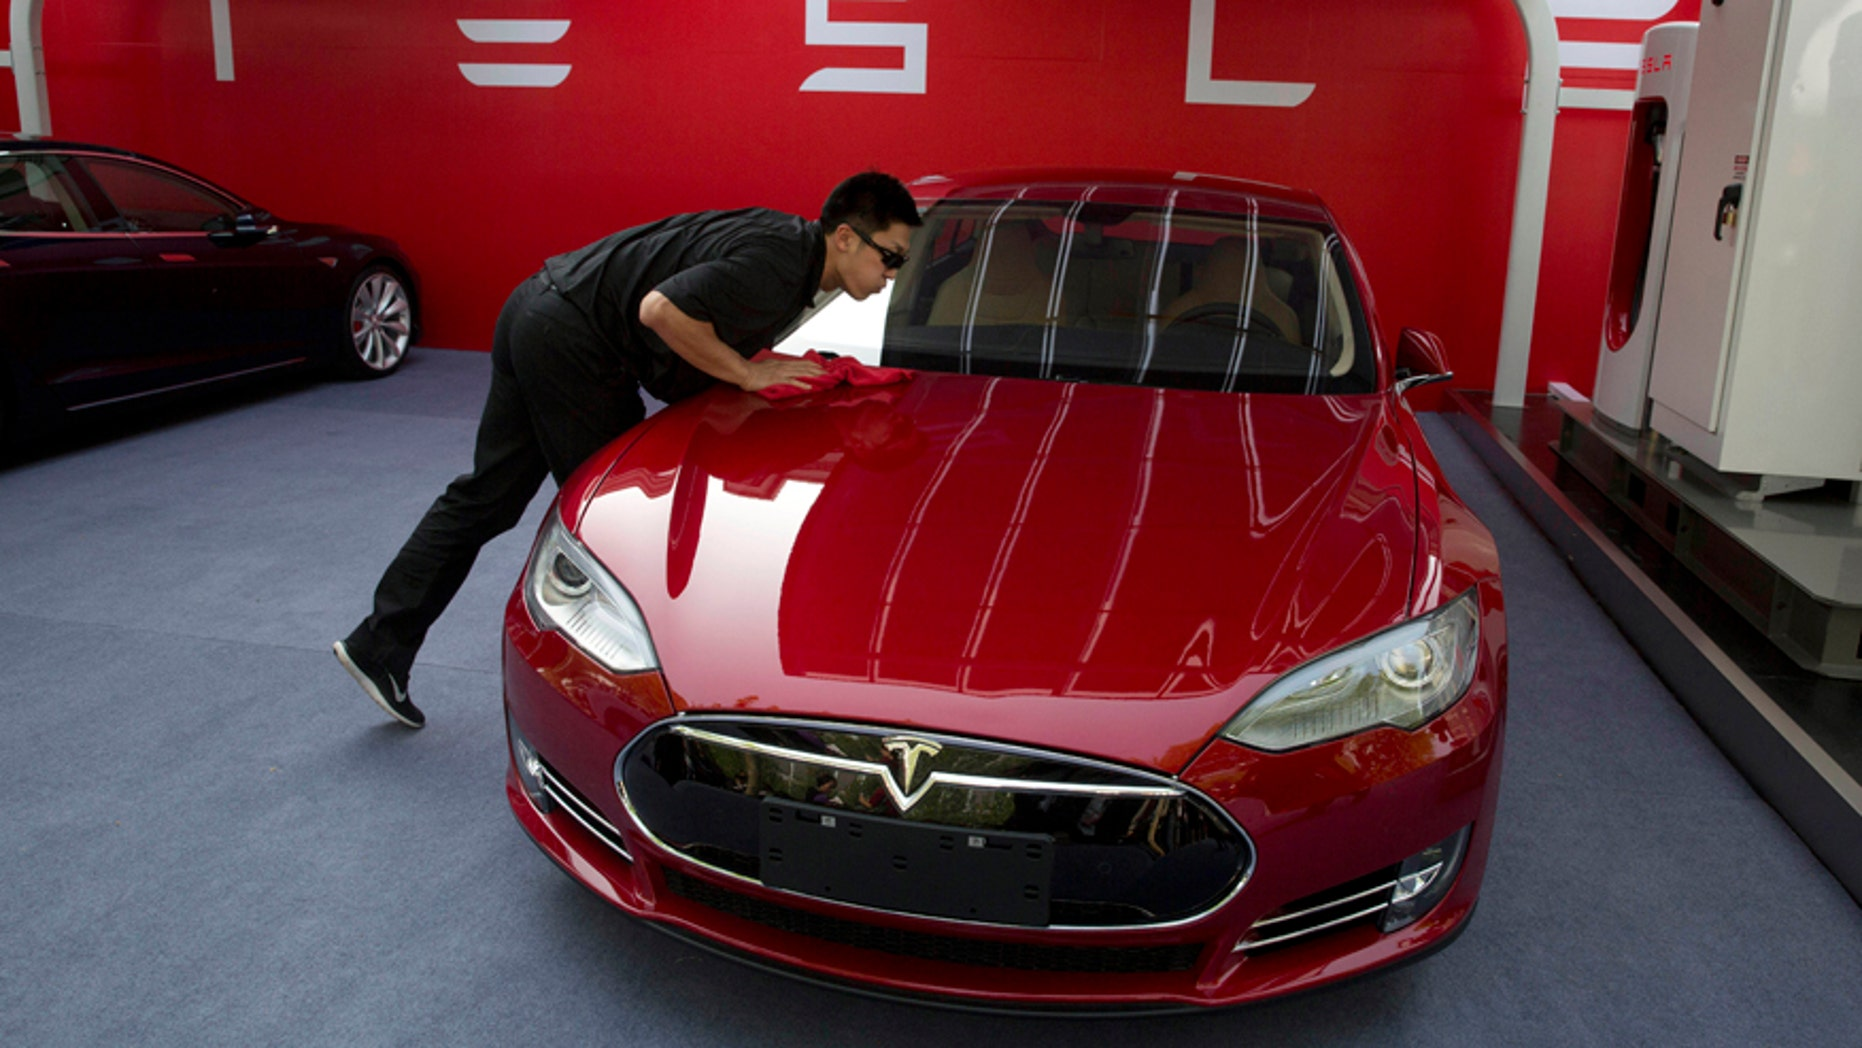 FILE - In this April 22, 2014 file photo, a worker cleans a Tesla Model S sedan before a event to deliver the first set of cars to customers in Beijing. Tesla Motors on Thursday, March 19, 2015 said it is updating its Model S electric car to help ease drivers' worries about running out of battery charge.  (AP Photo/Ng Han Guan, File)